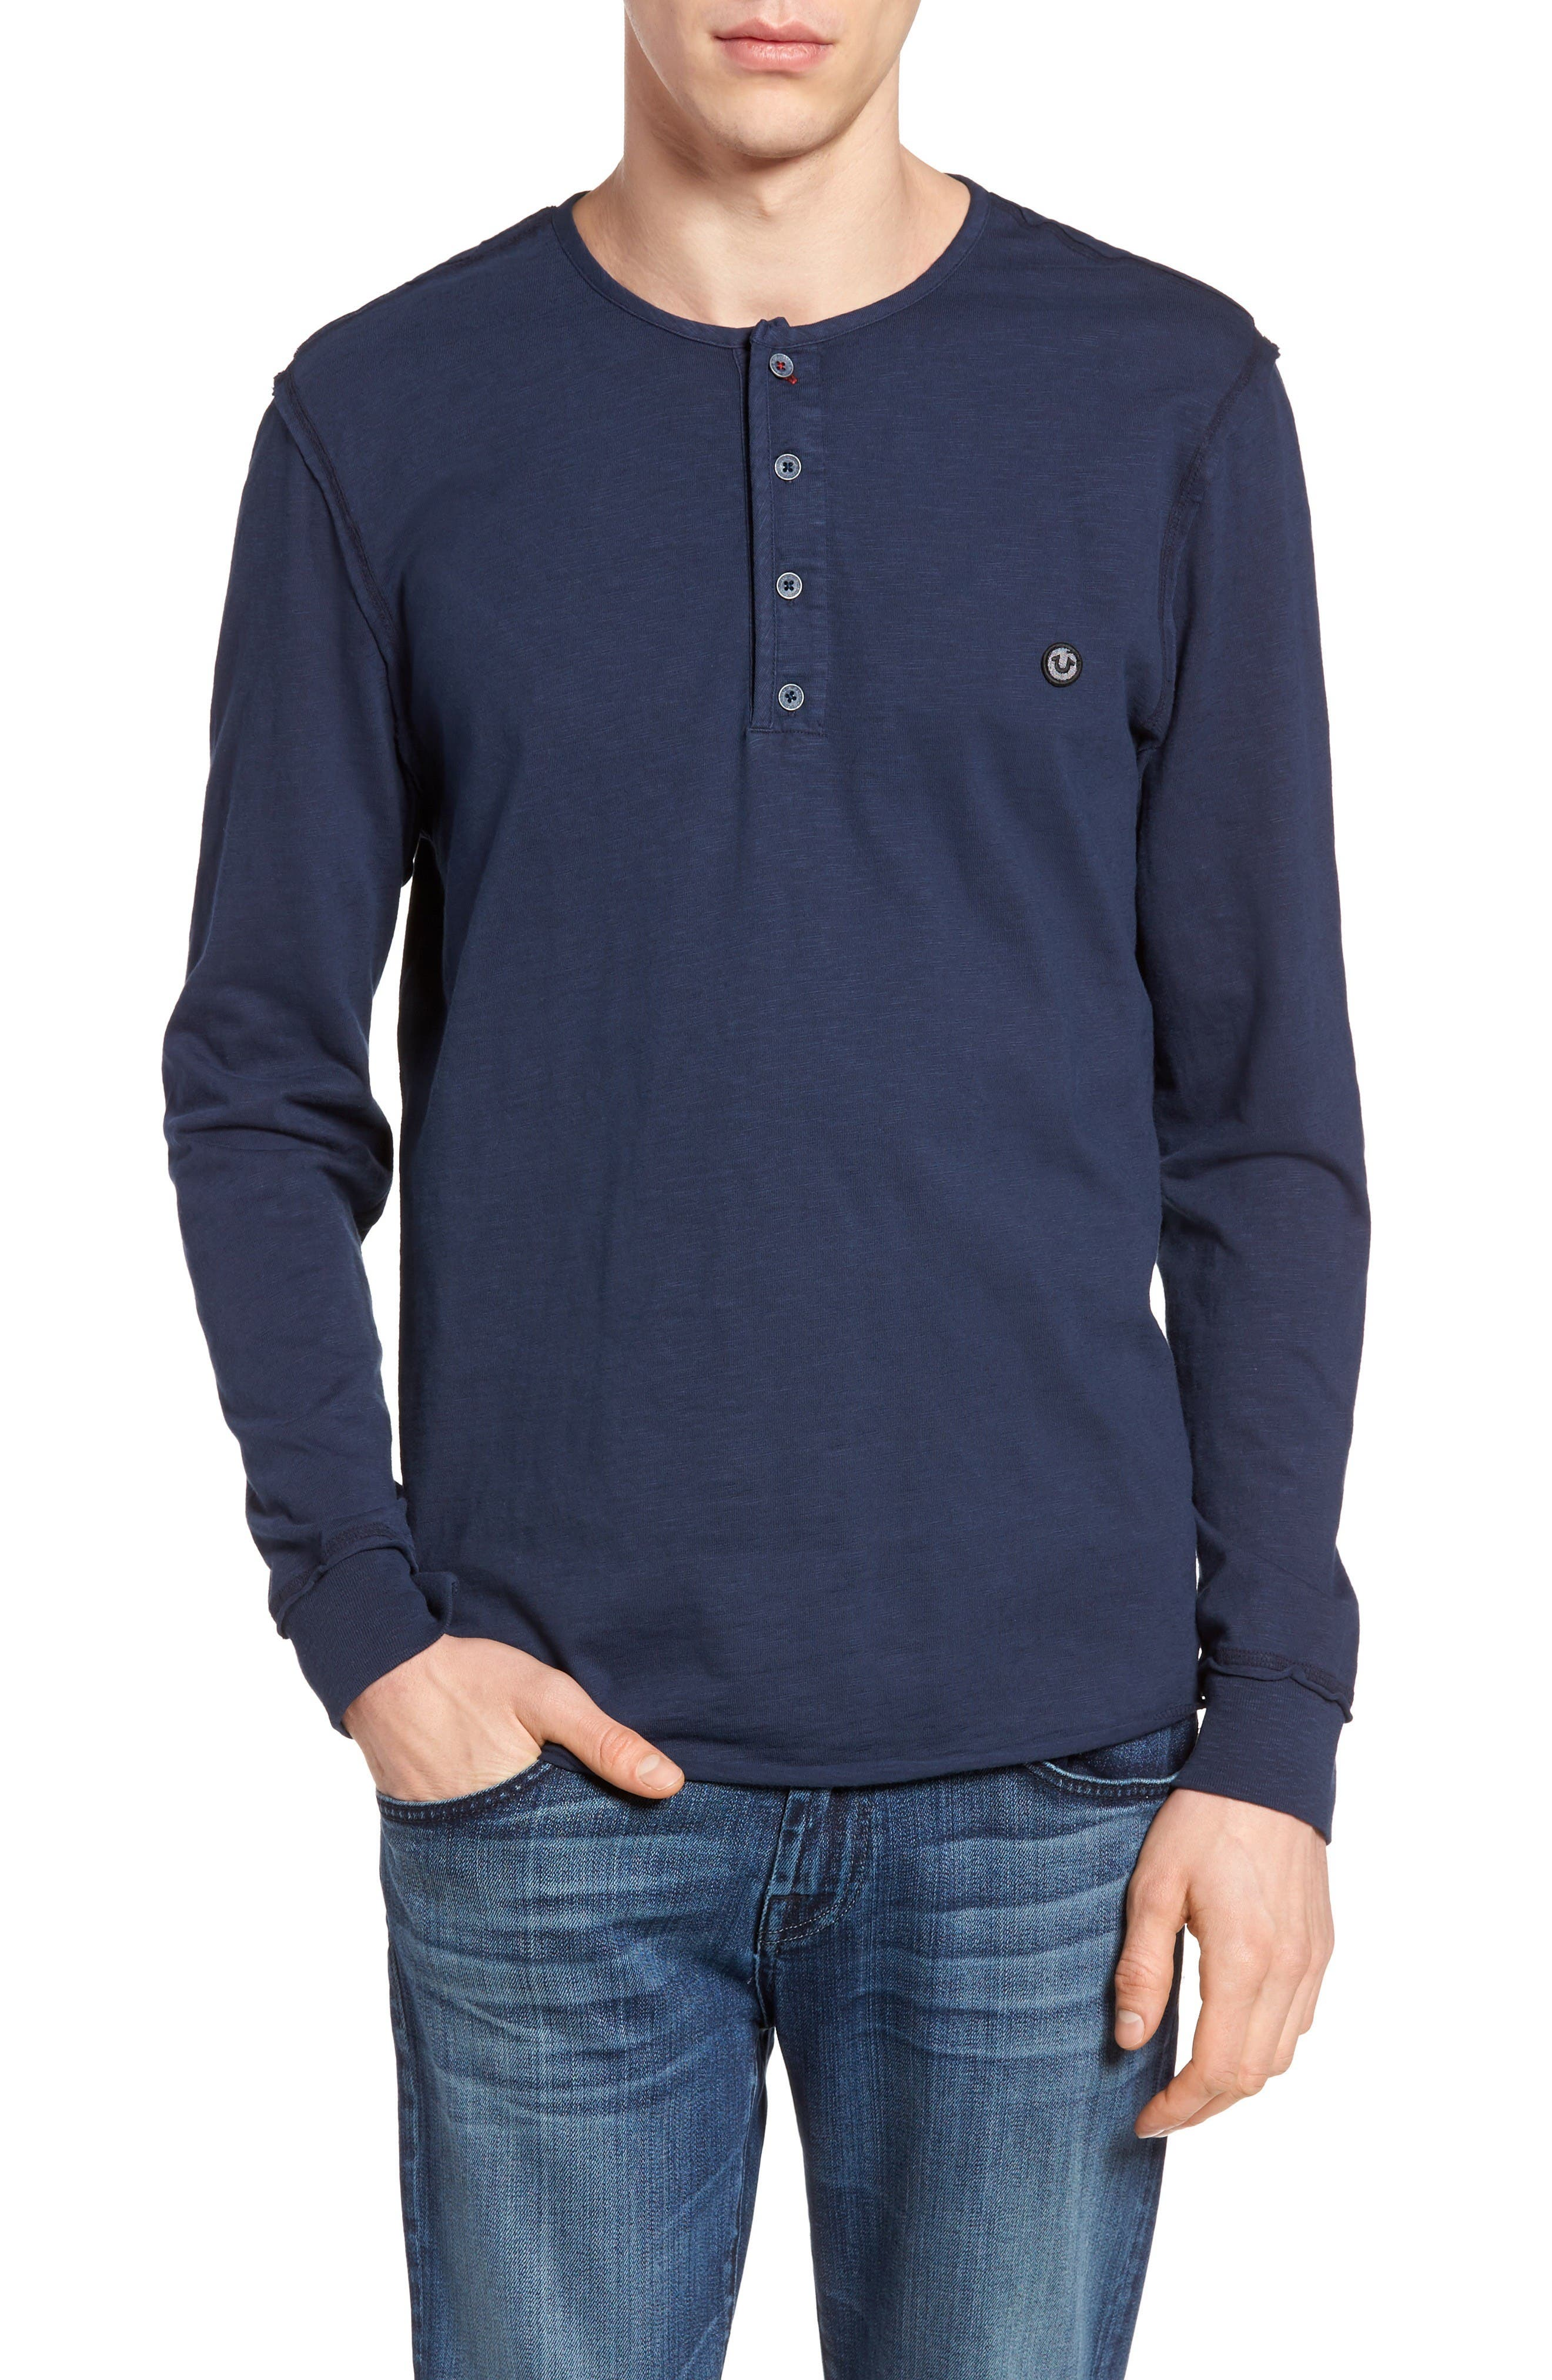 Main Image - True Religion Brand Jeans Raw Edge Henley